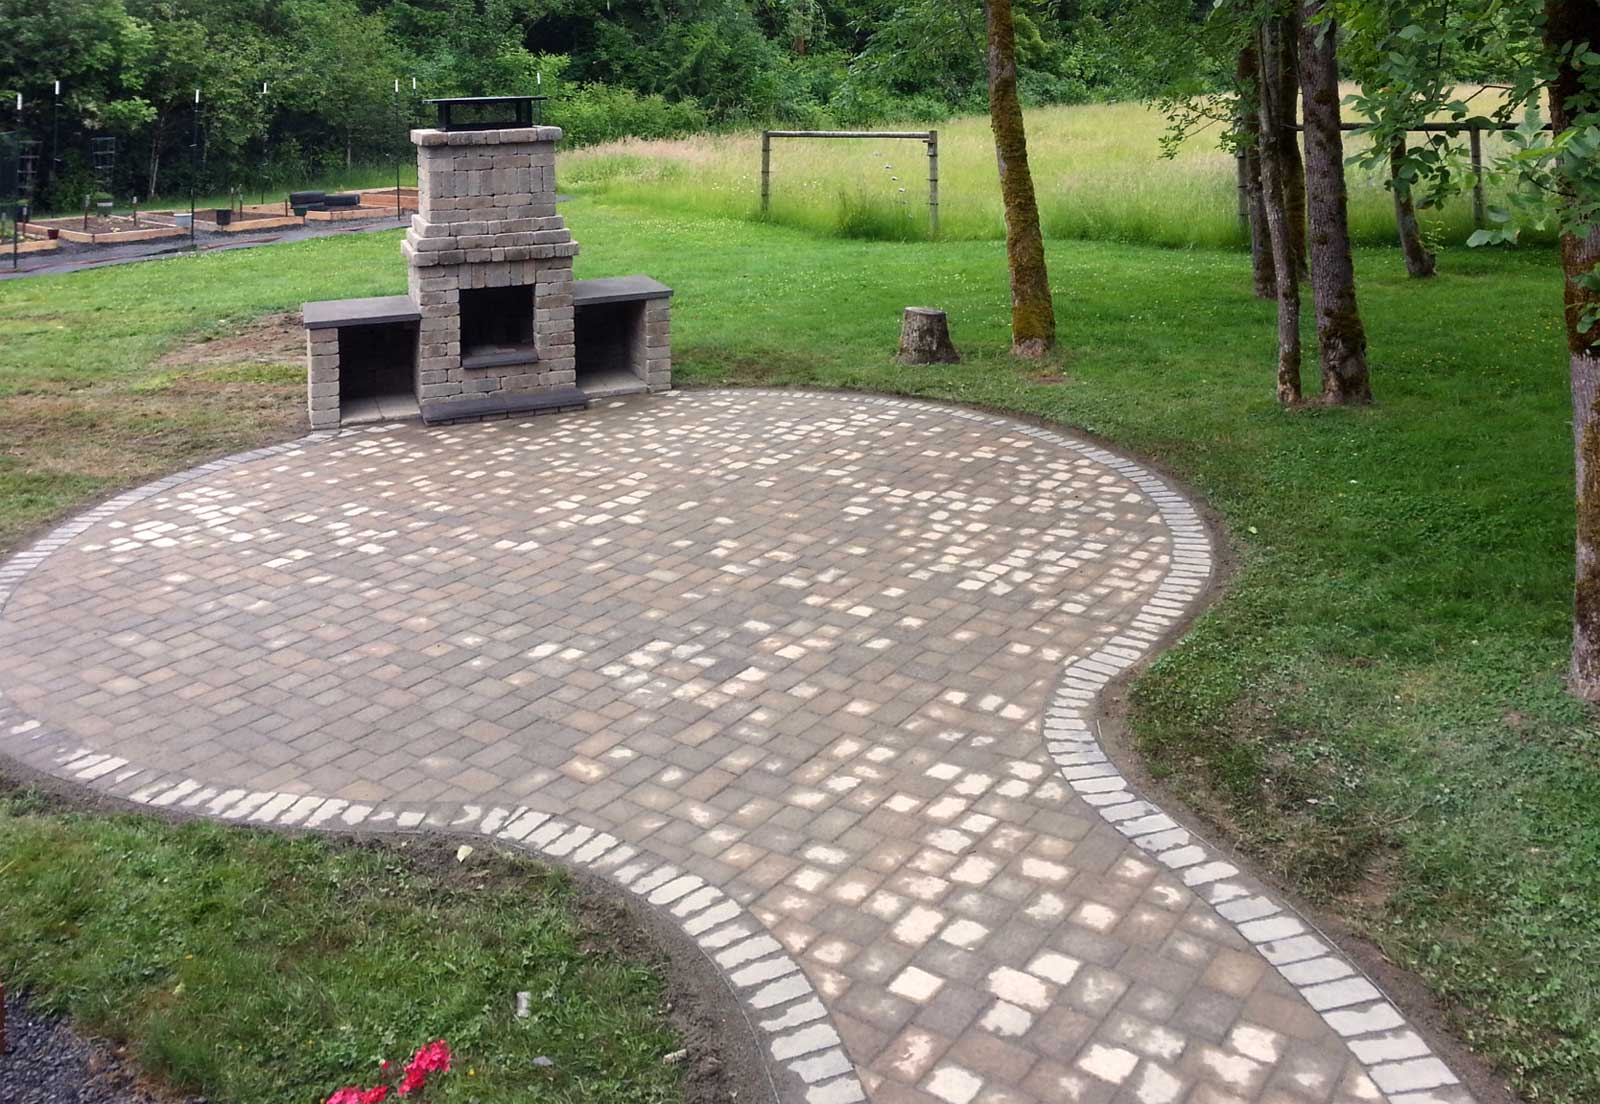 Chehalis Outdoor Fire Pit Matching Paver Patio Ajb